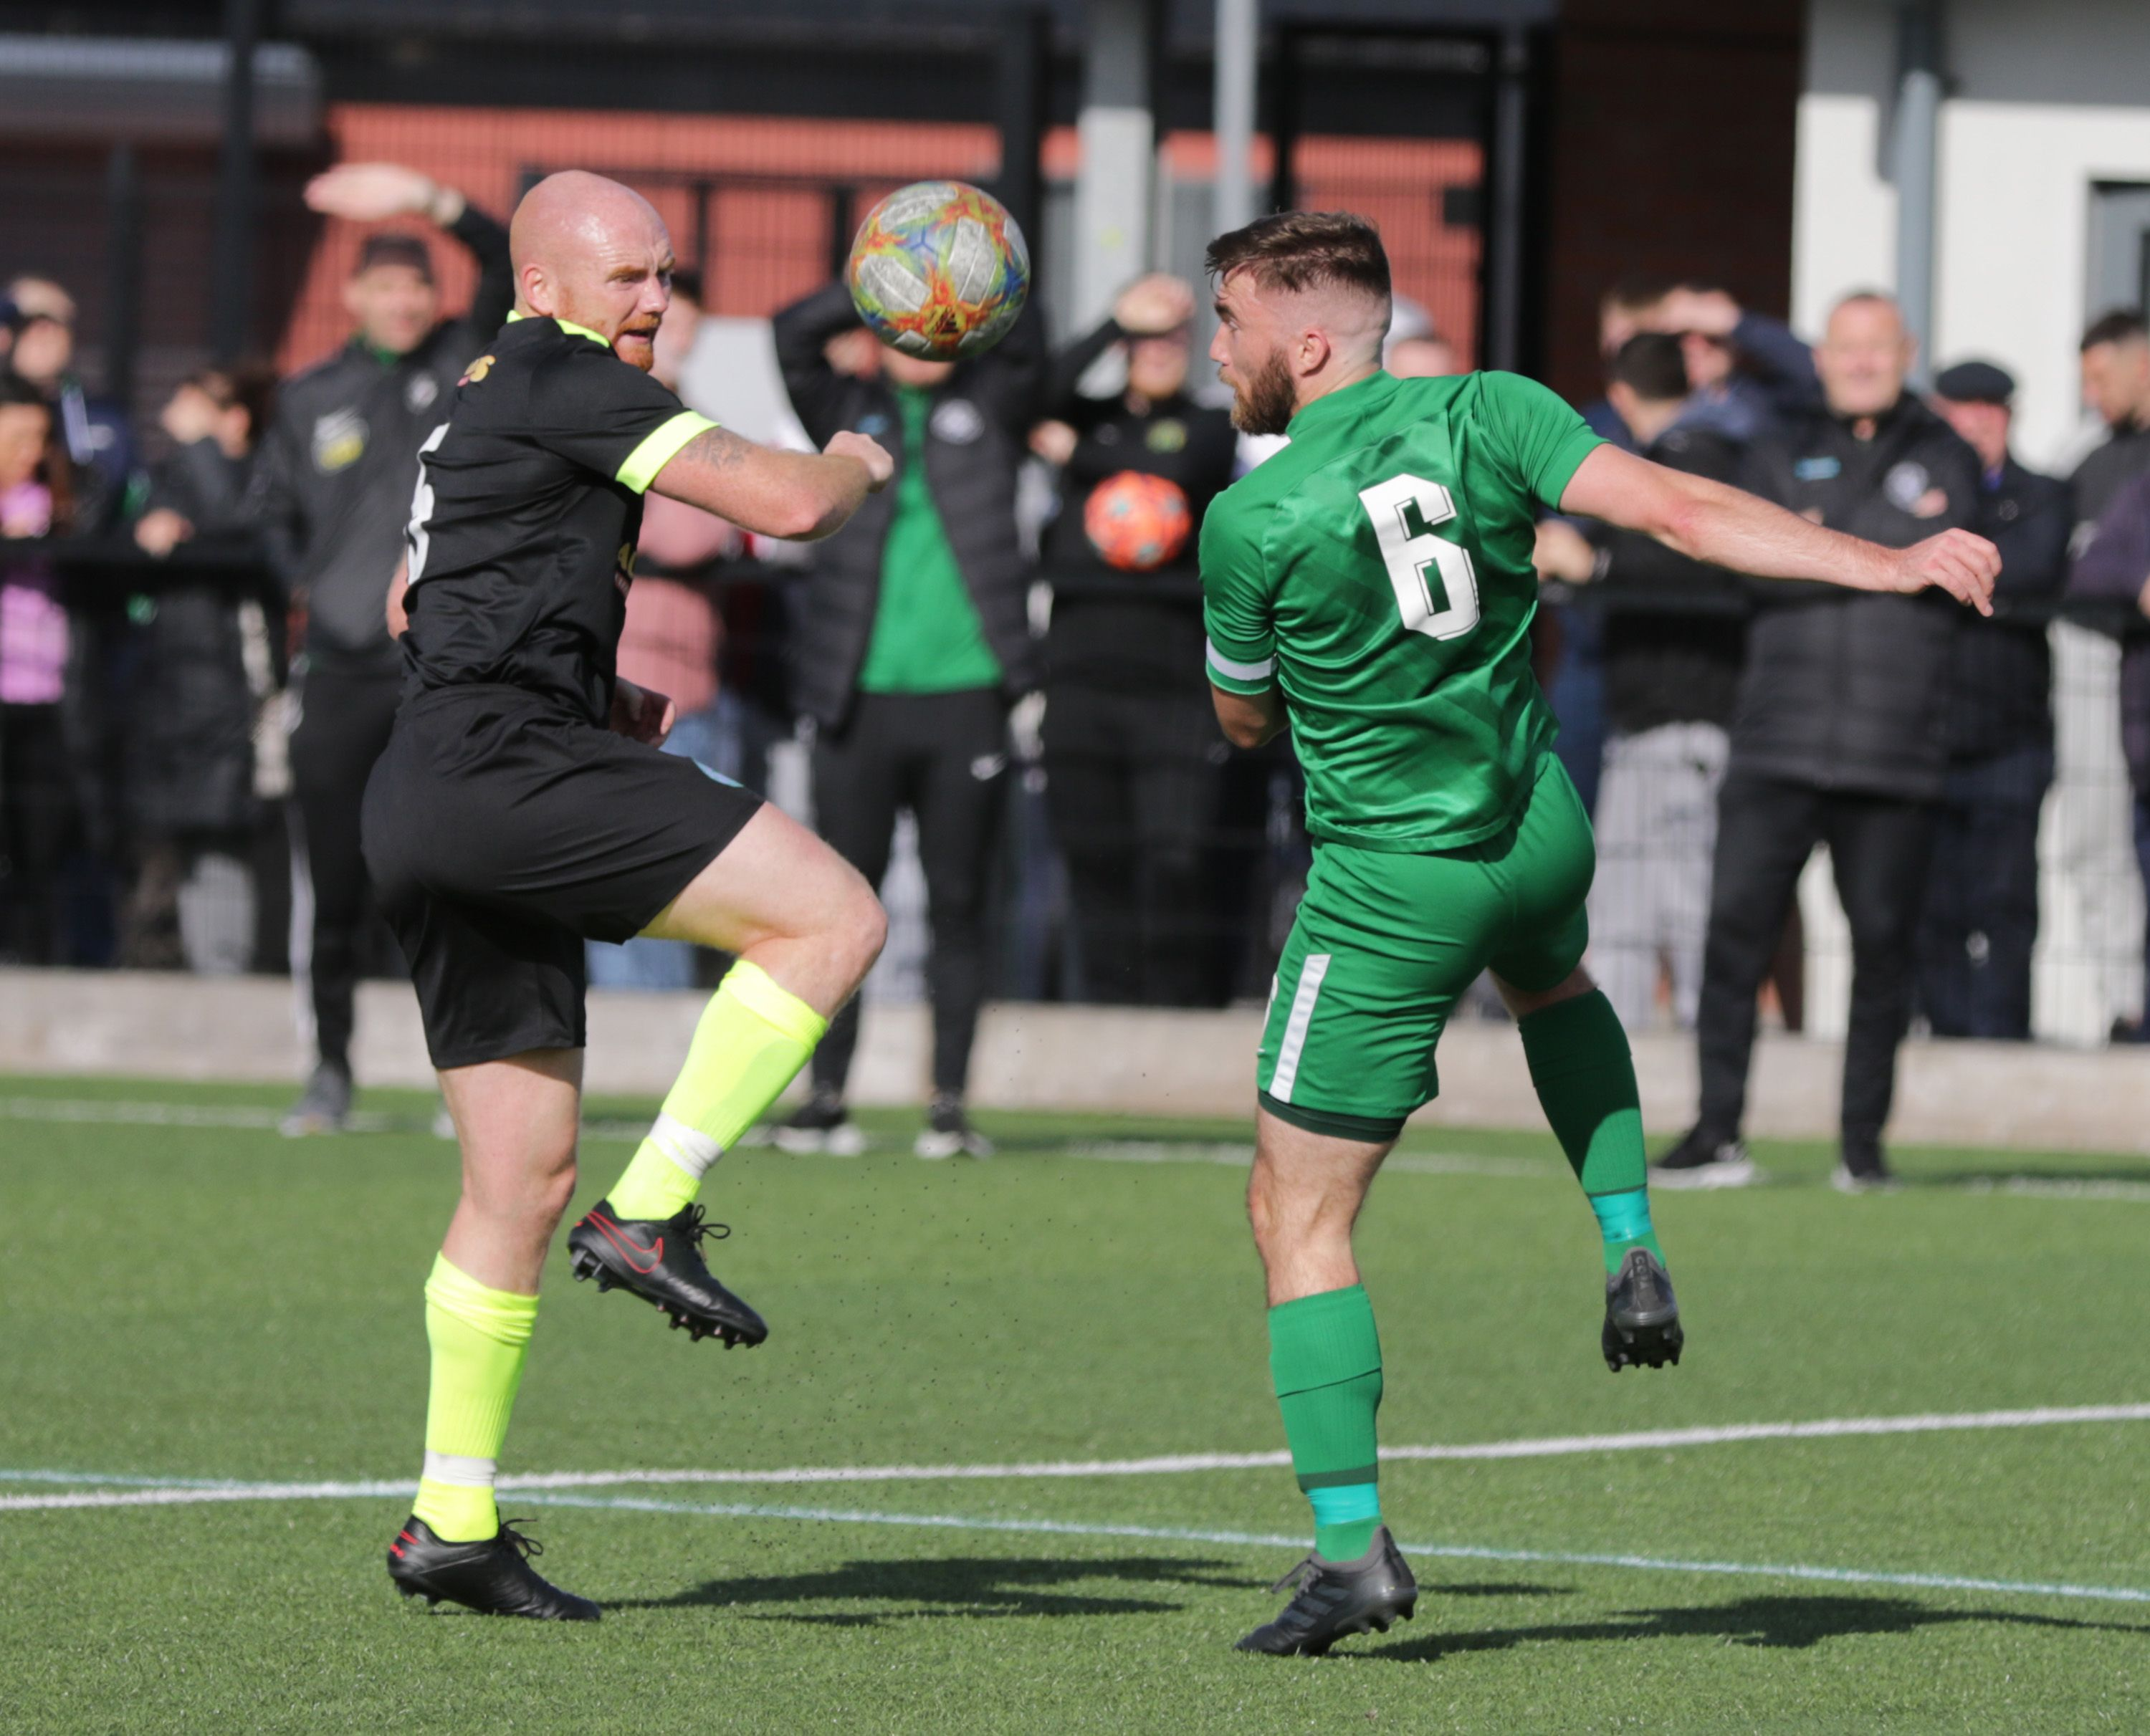 Eyes on the ball as Crumlin Star\'s Joe McNeill comes up against Newington\'s Richard Gowdy during Saturday\'s Steel and Sons Cup clash at The Cricky